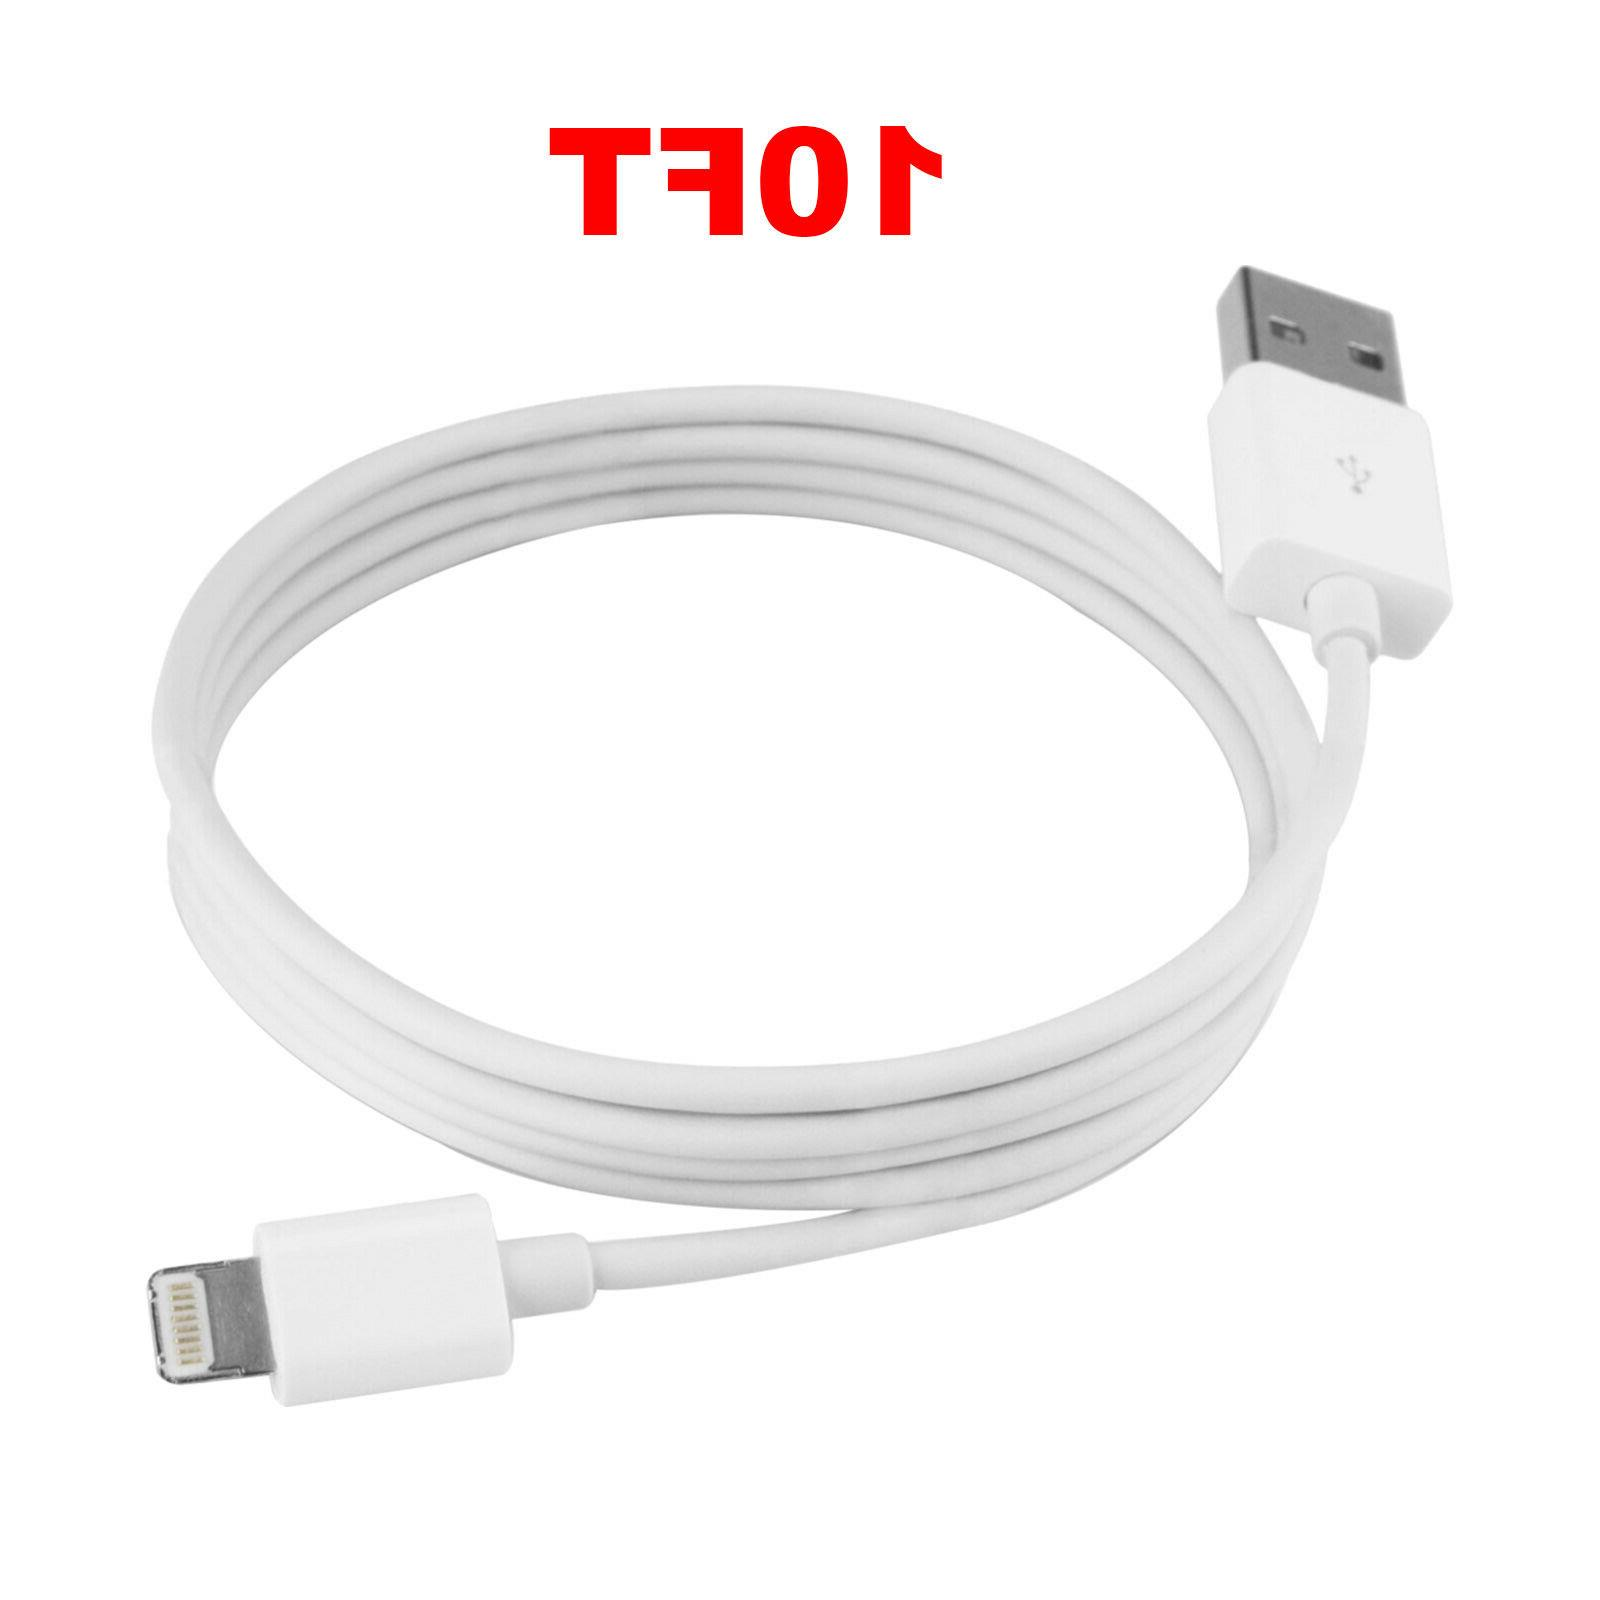 New for Lightning Charger Cable 7 Plus X XS 6ft 10ft